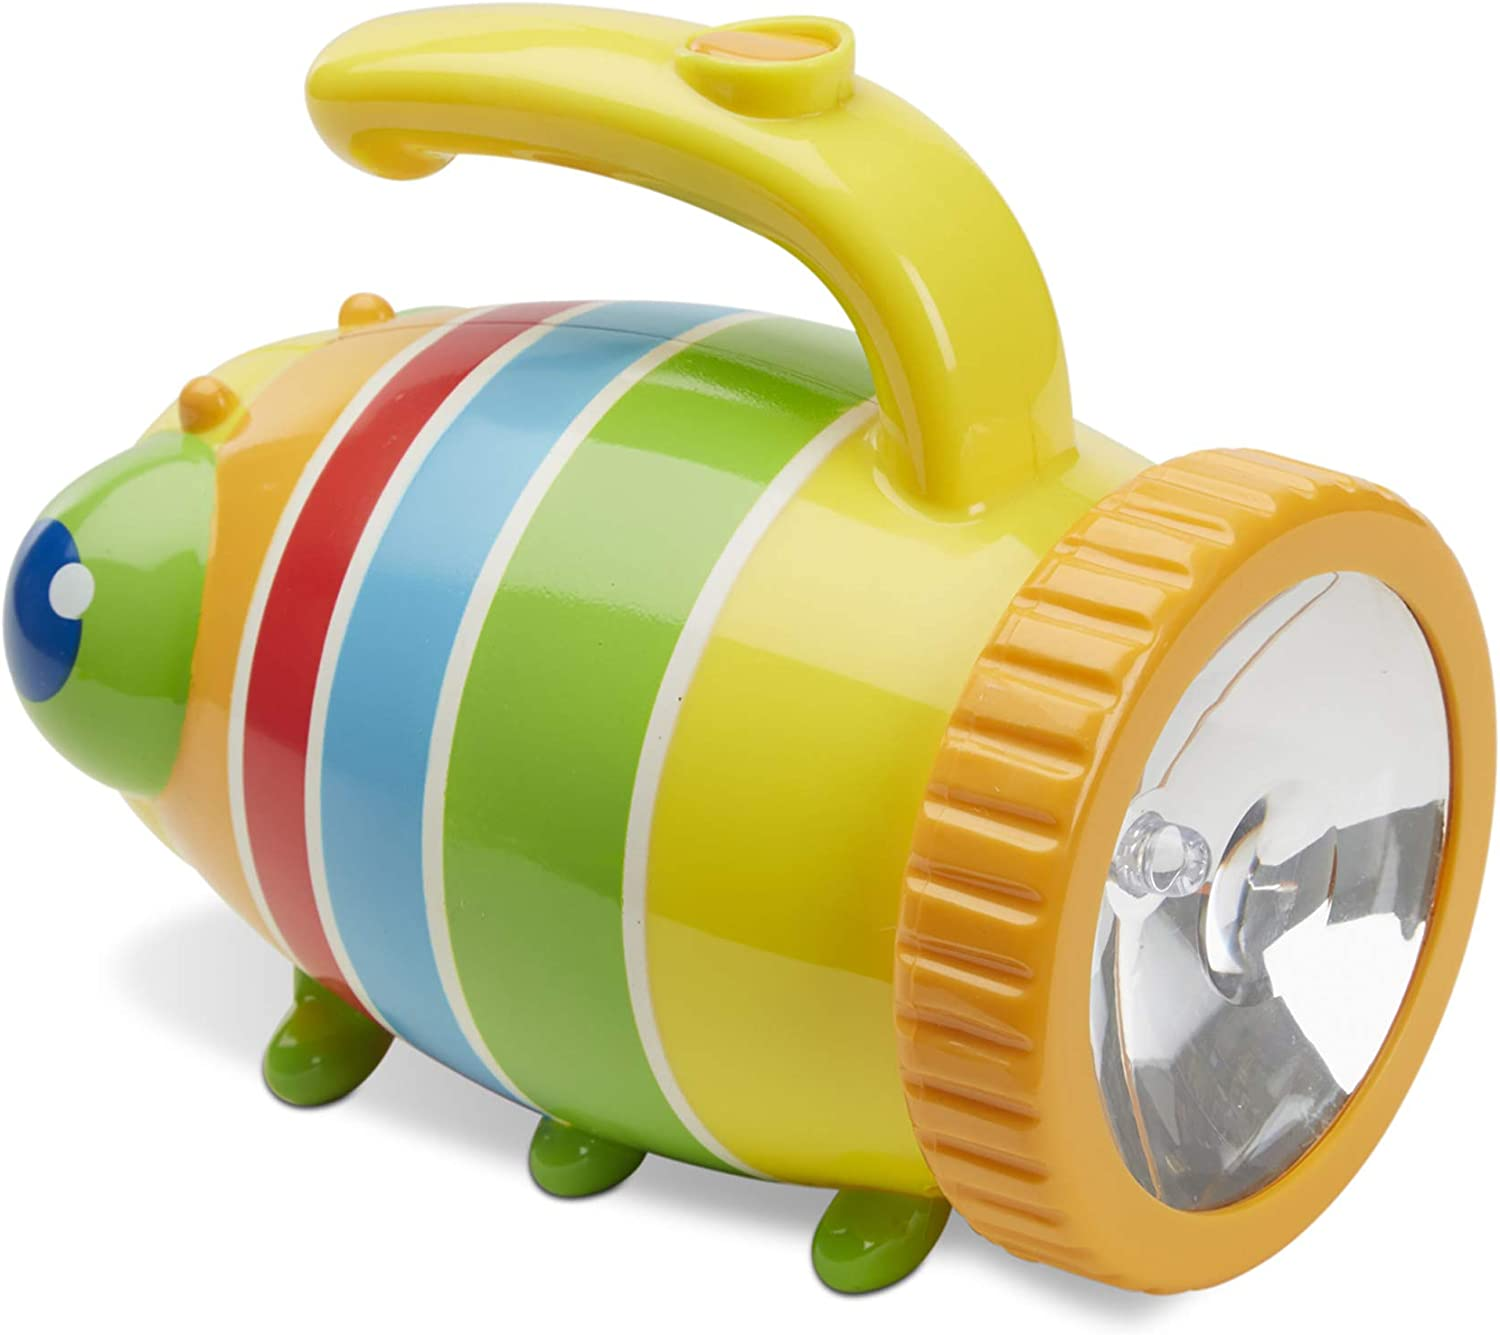 Image of a multi-colored catterpillar design kiddie flashlight with handle on top.